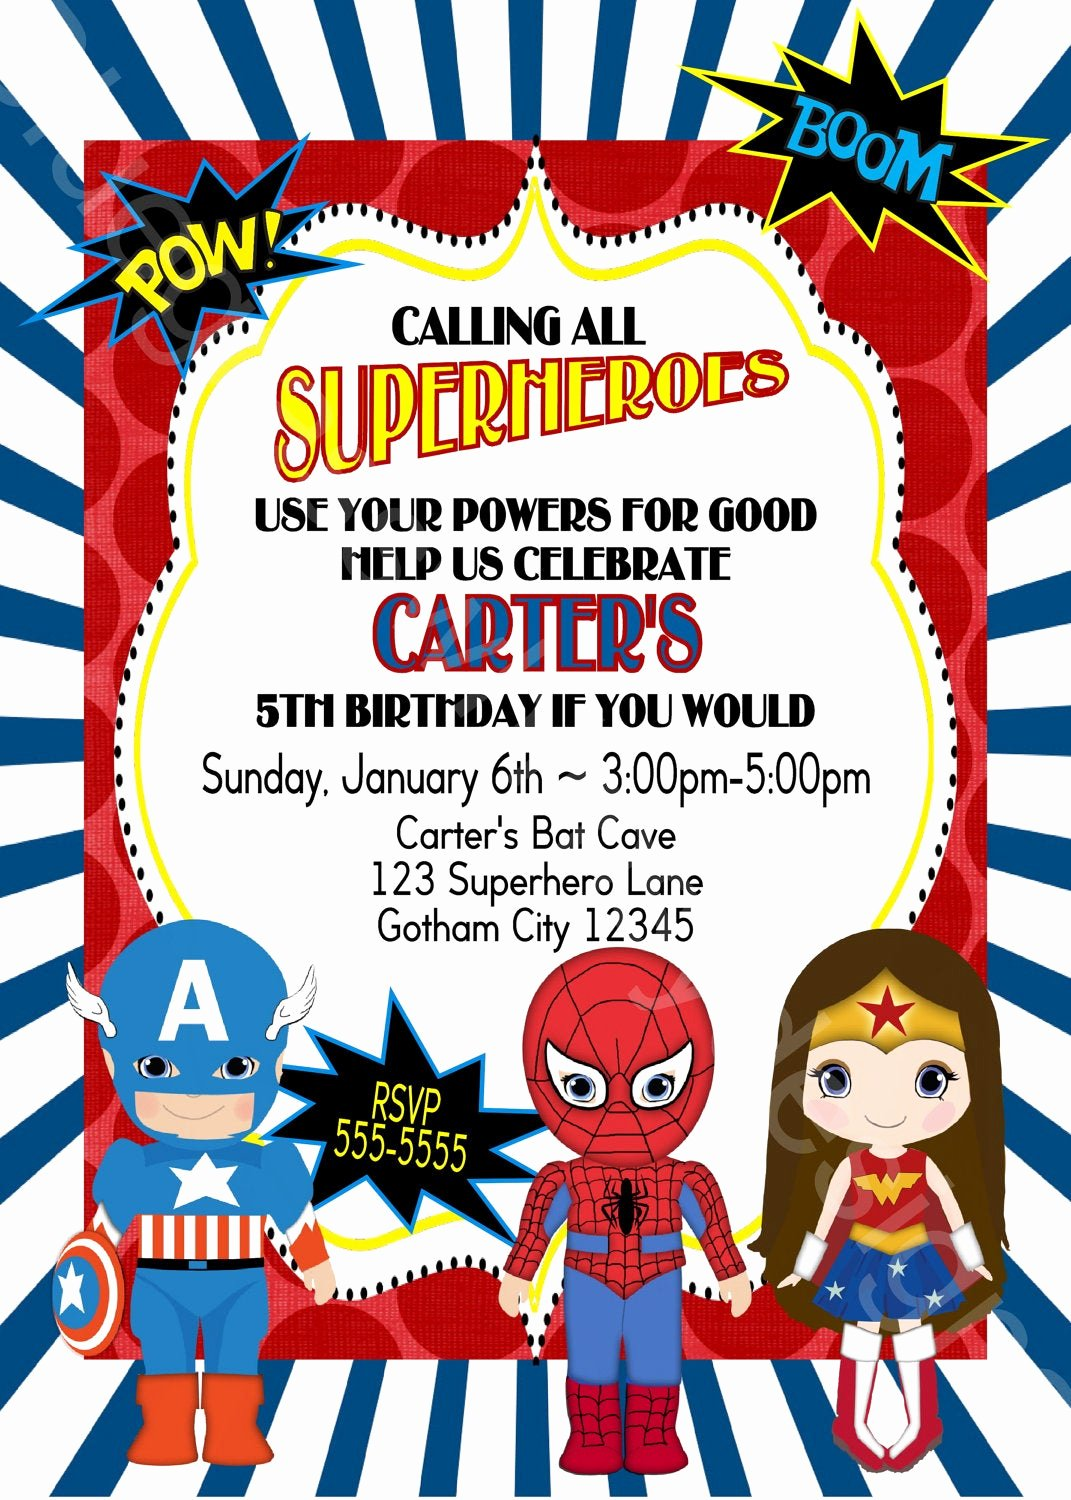 Calling All Superheroes Invitation Beautiful Calling All Superheroes Birthday Party Invitation Boy or